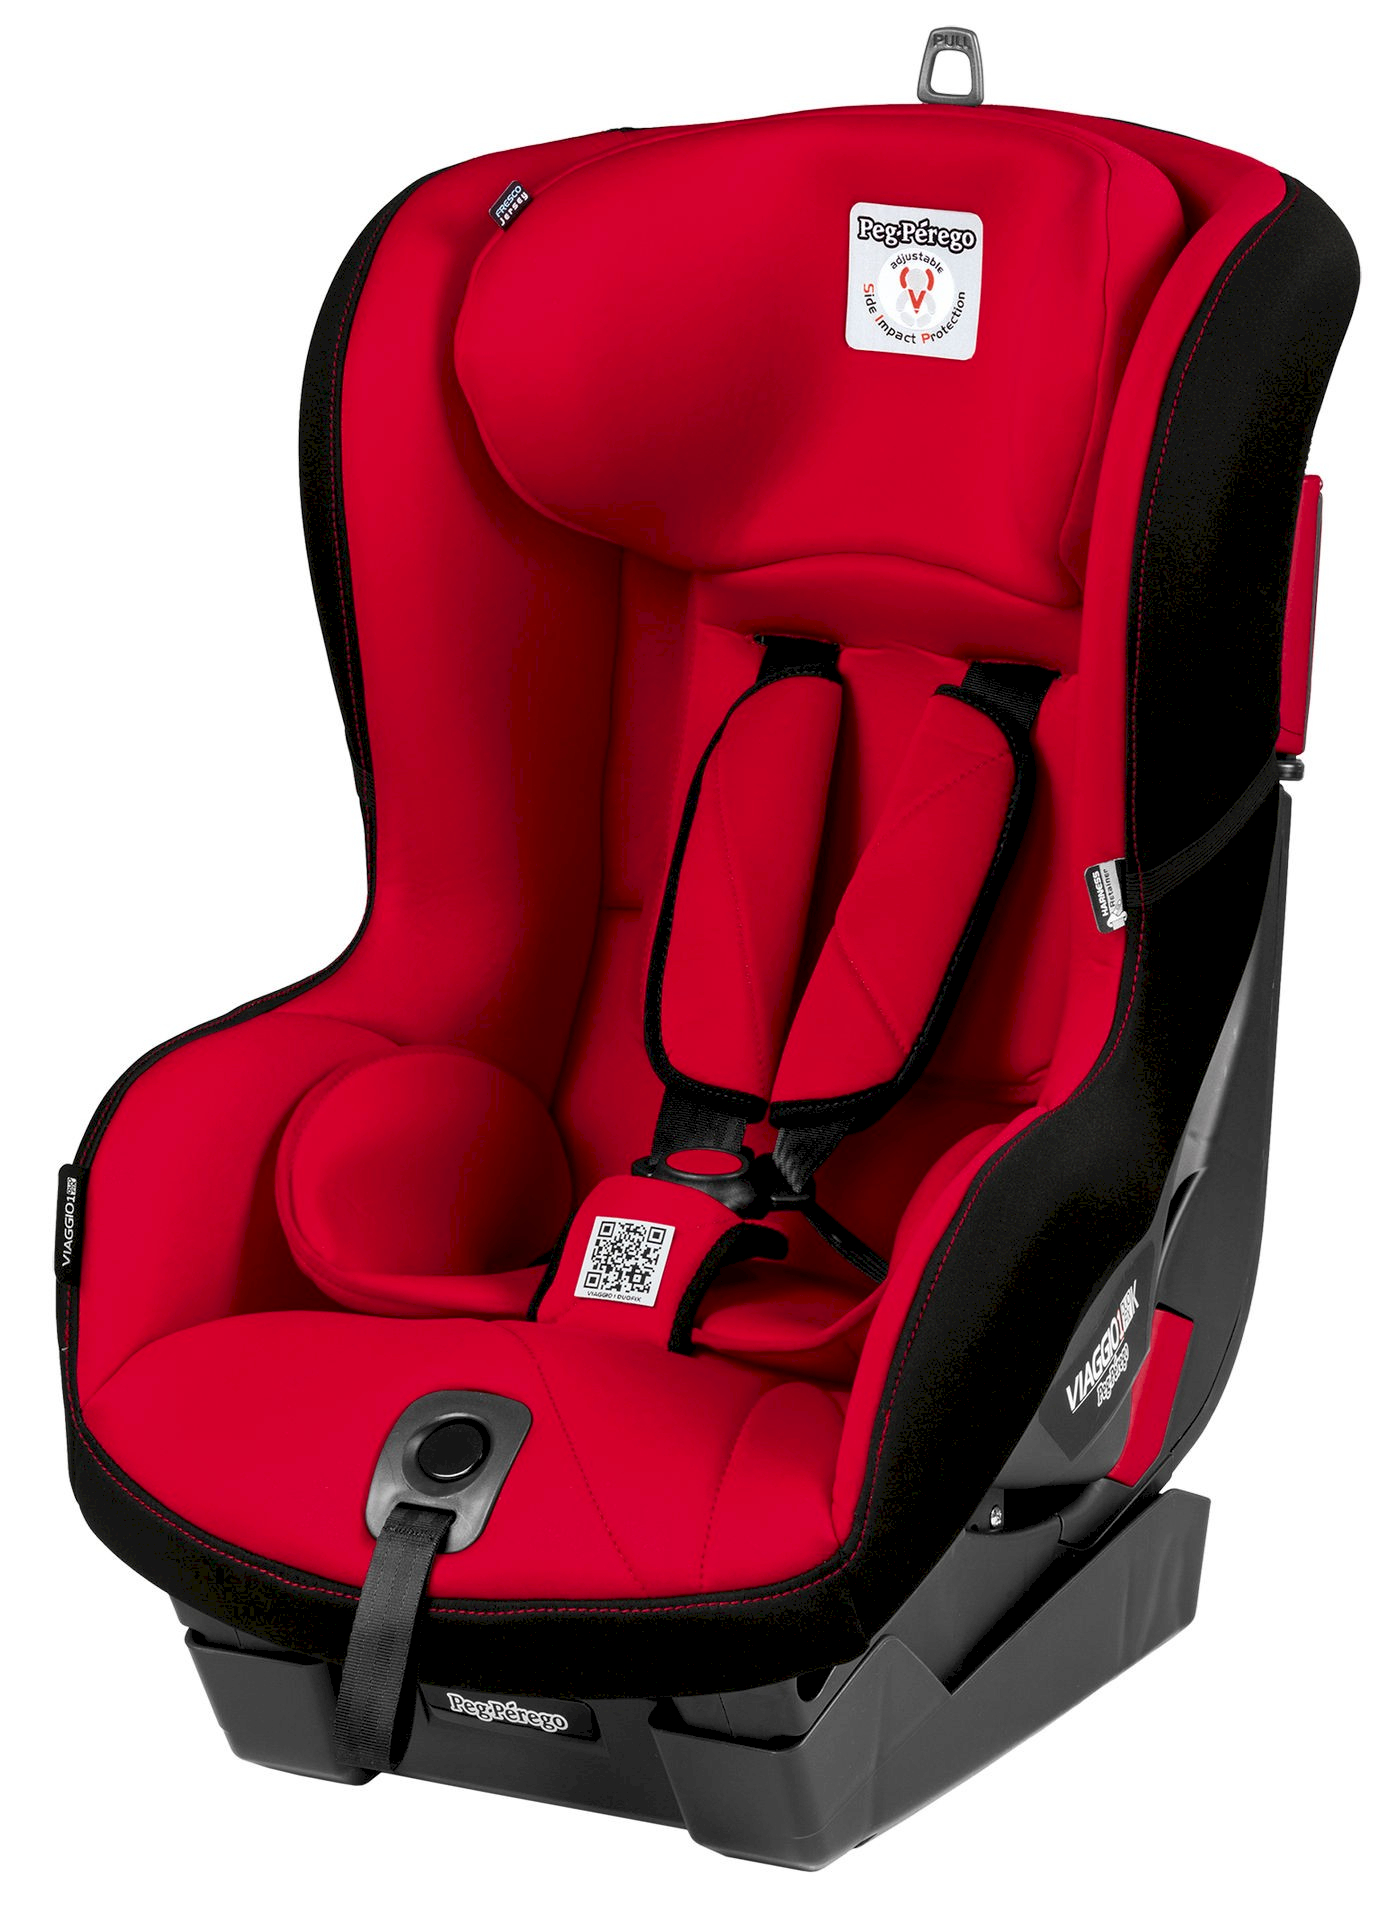 Siège-Auto Duo Fix K Peg Perego Rouge